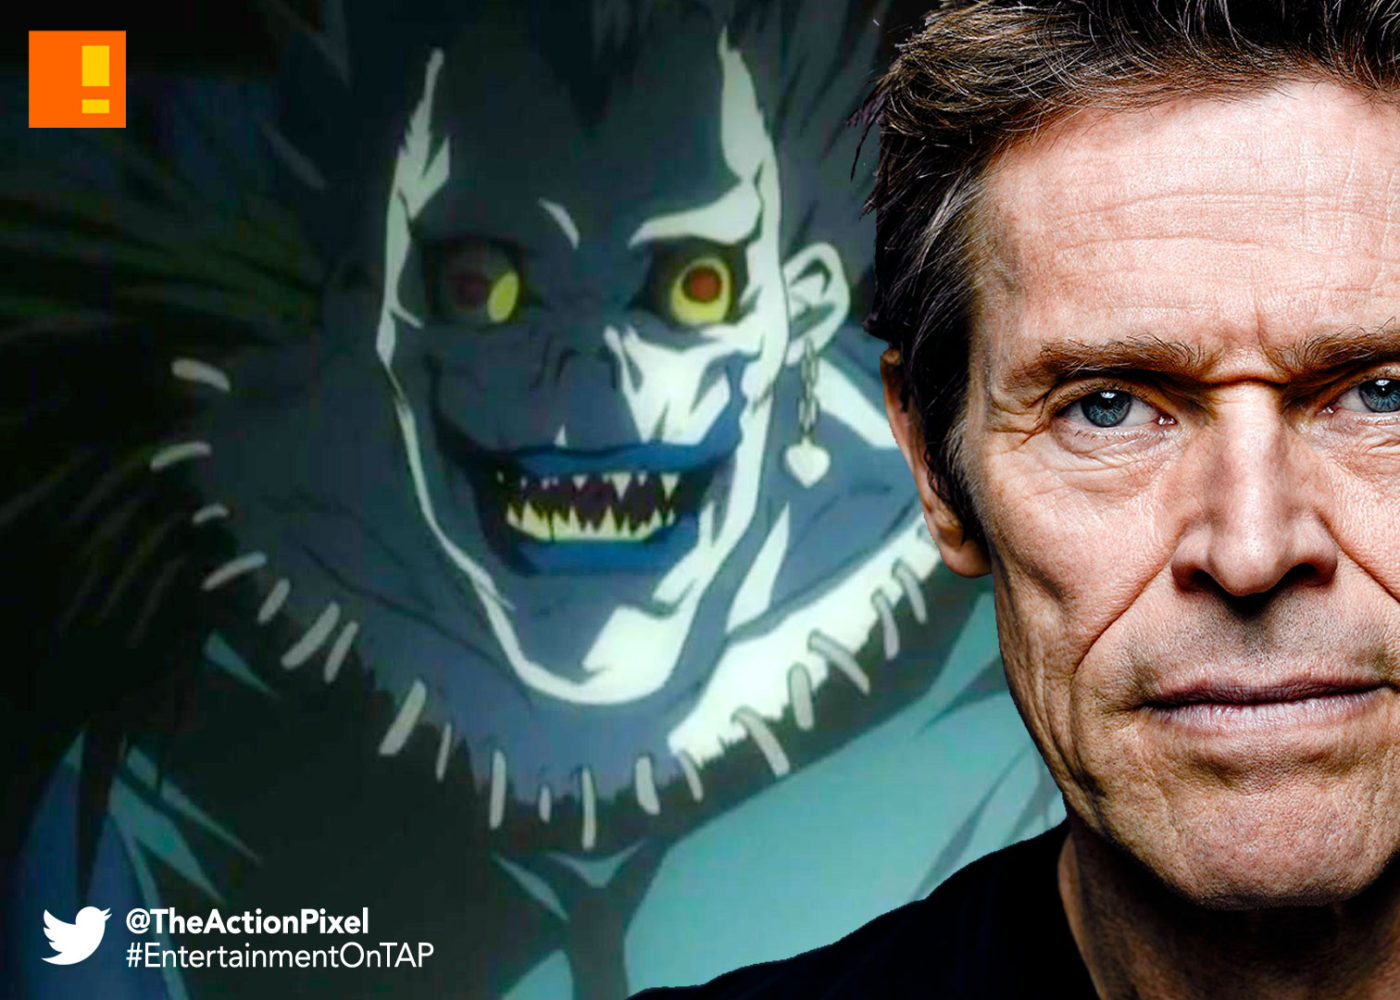 ryuk, death note, willem dafoe, entertainment on tap, the action pixel,